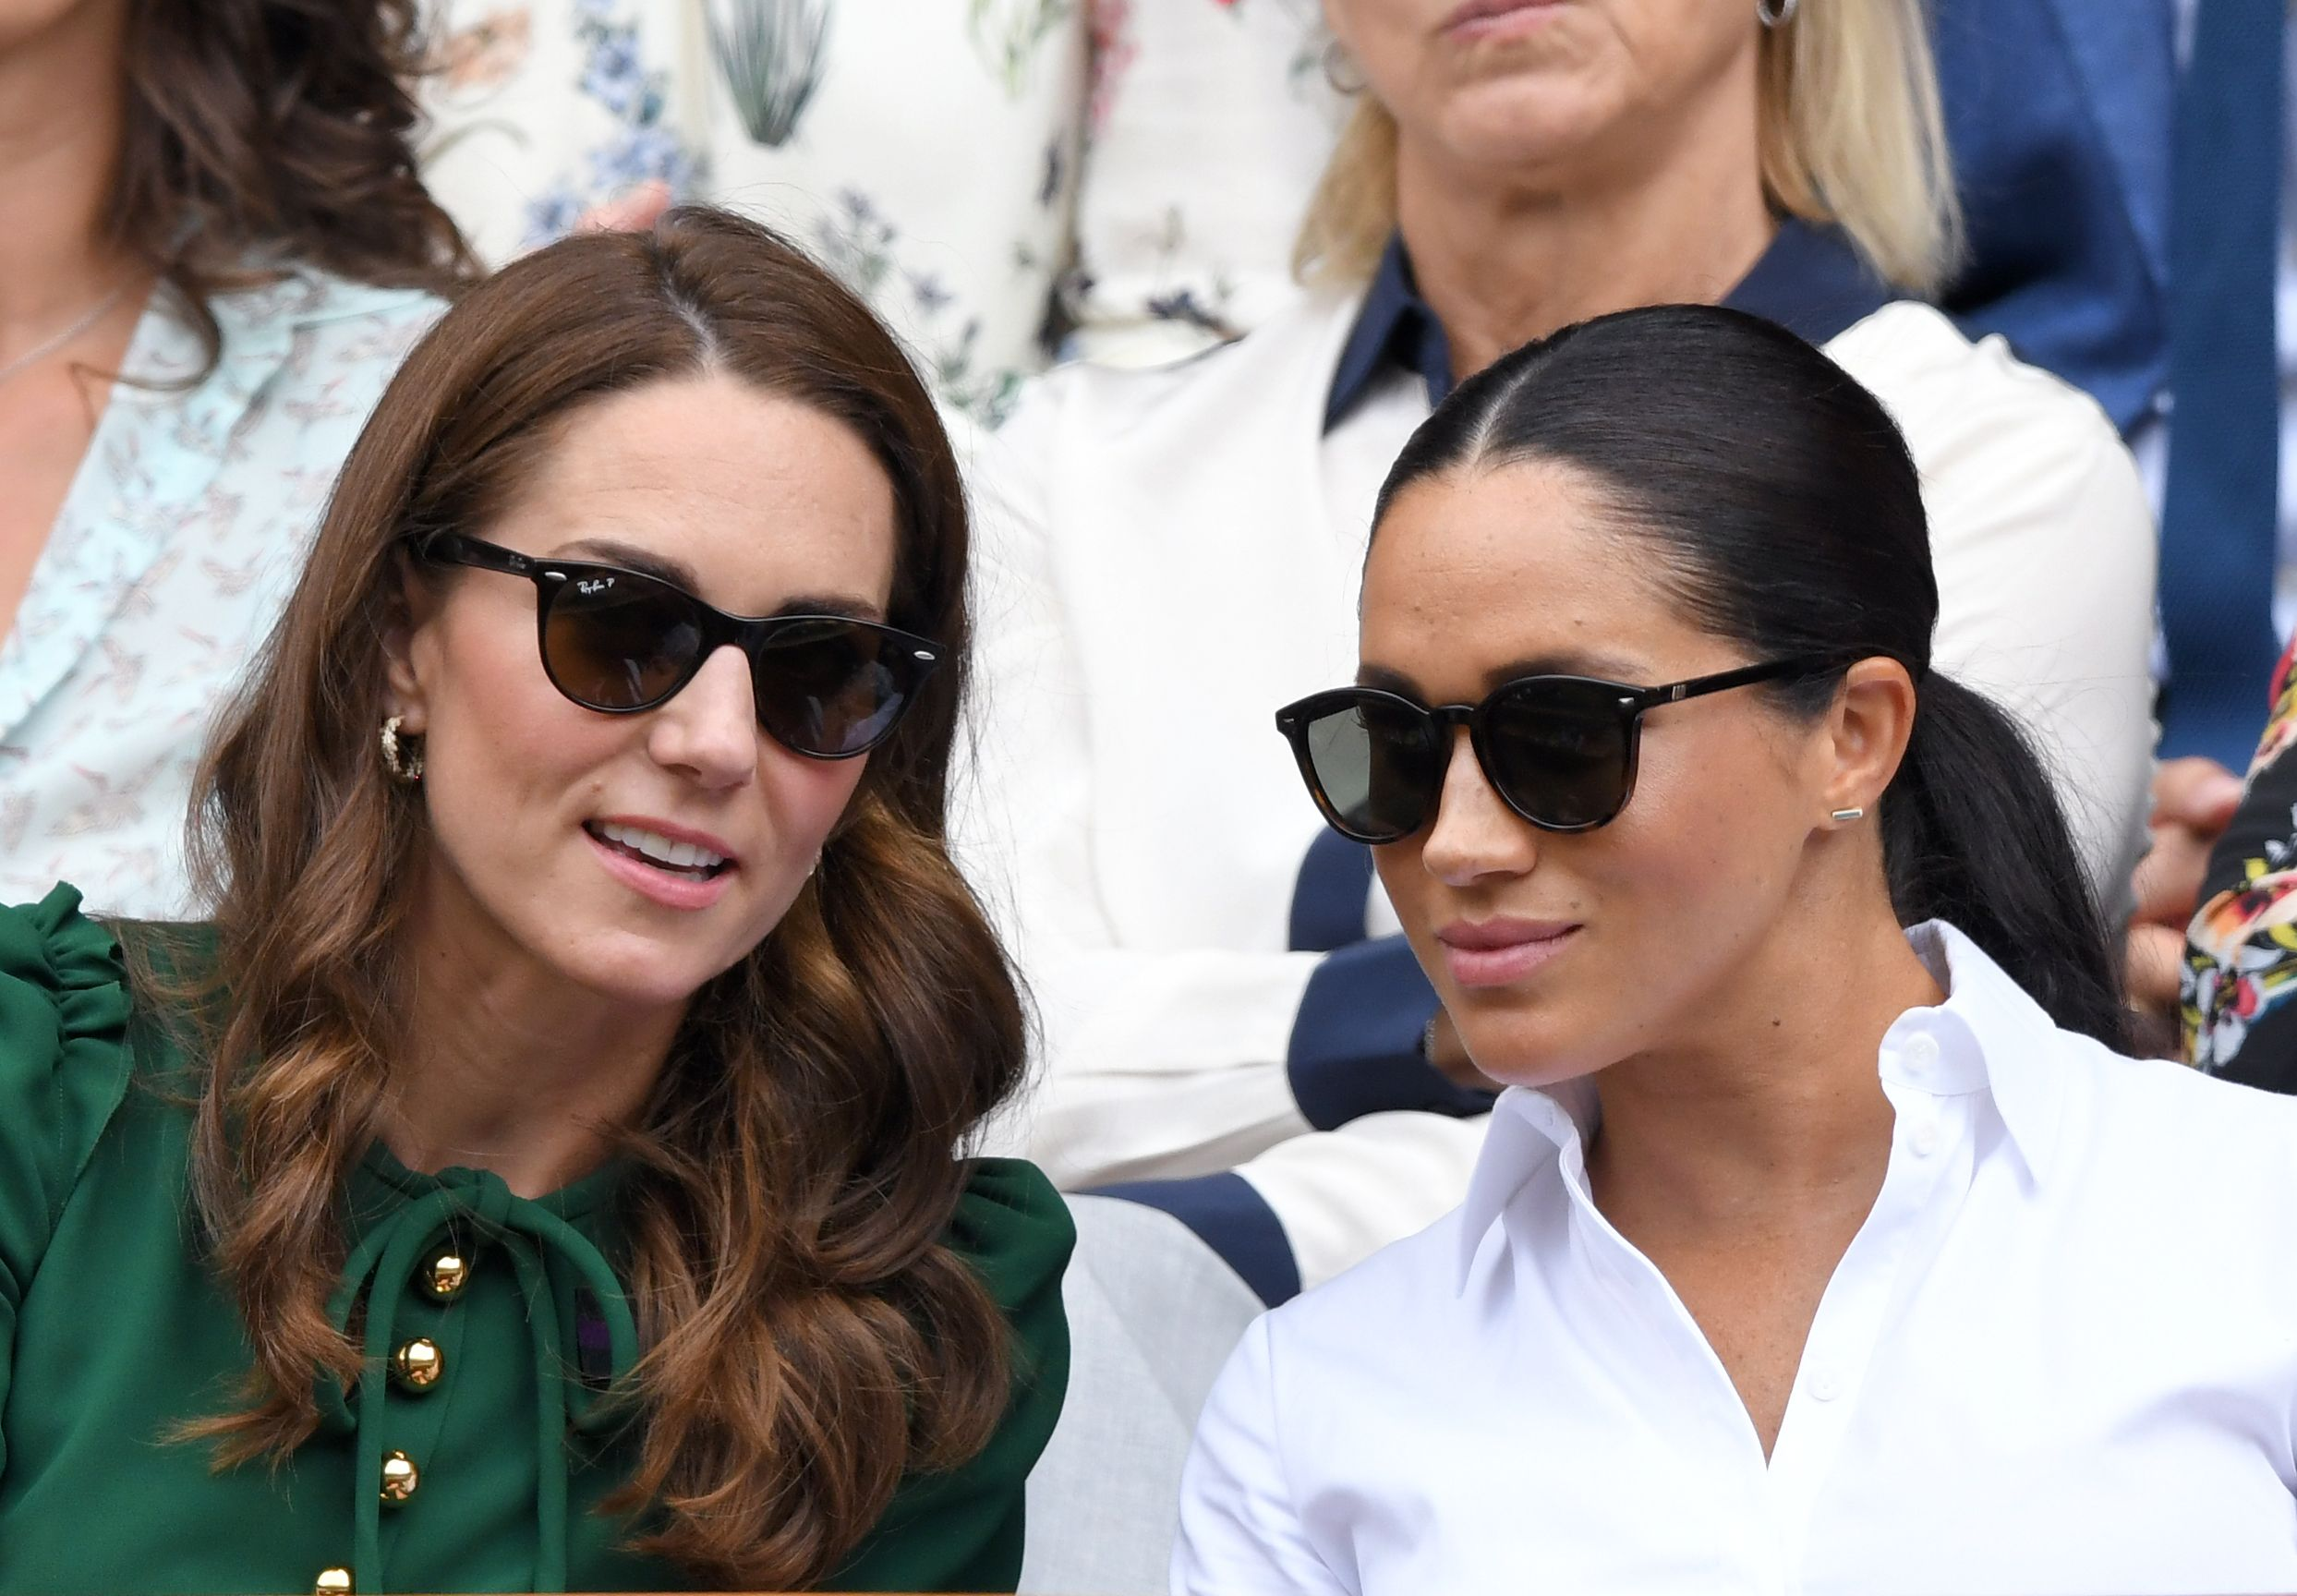 Kate Middleton and Meghan Markle in the Royal Box on Centre Court during day twelve of the Wimbledon Tennis Championships at All England Lawn Tennis and Croquet Club on July 13, 2019 | Photo: Getty Images